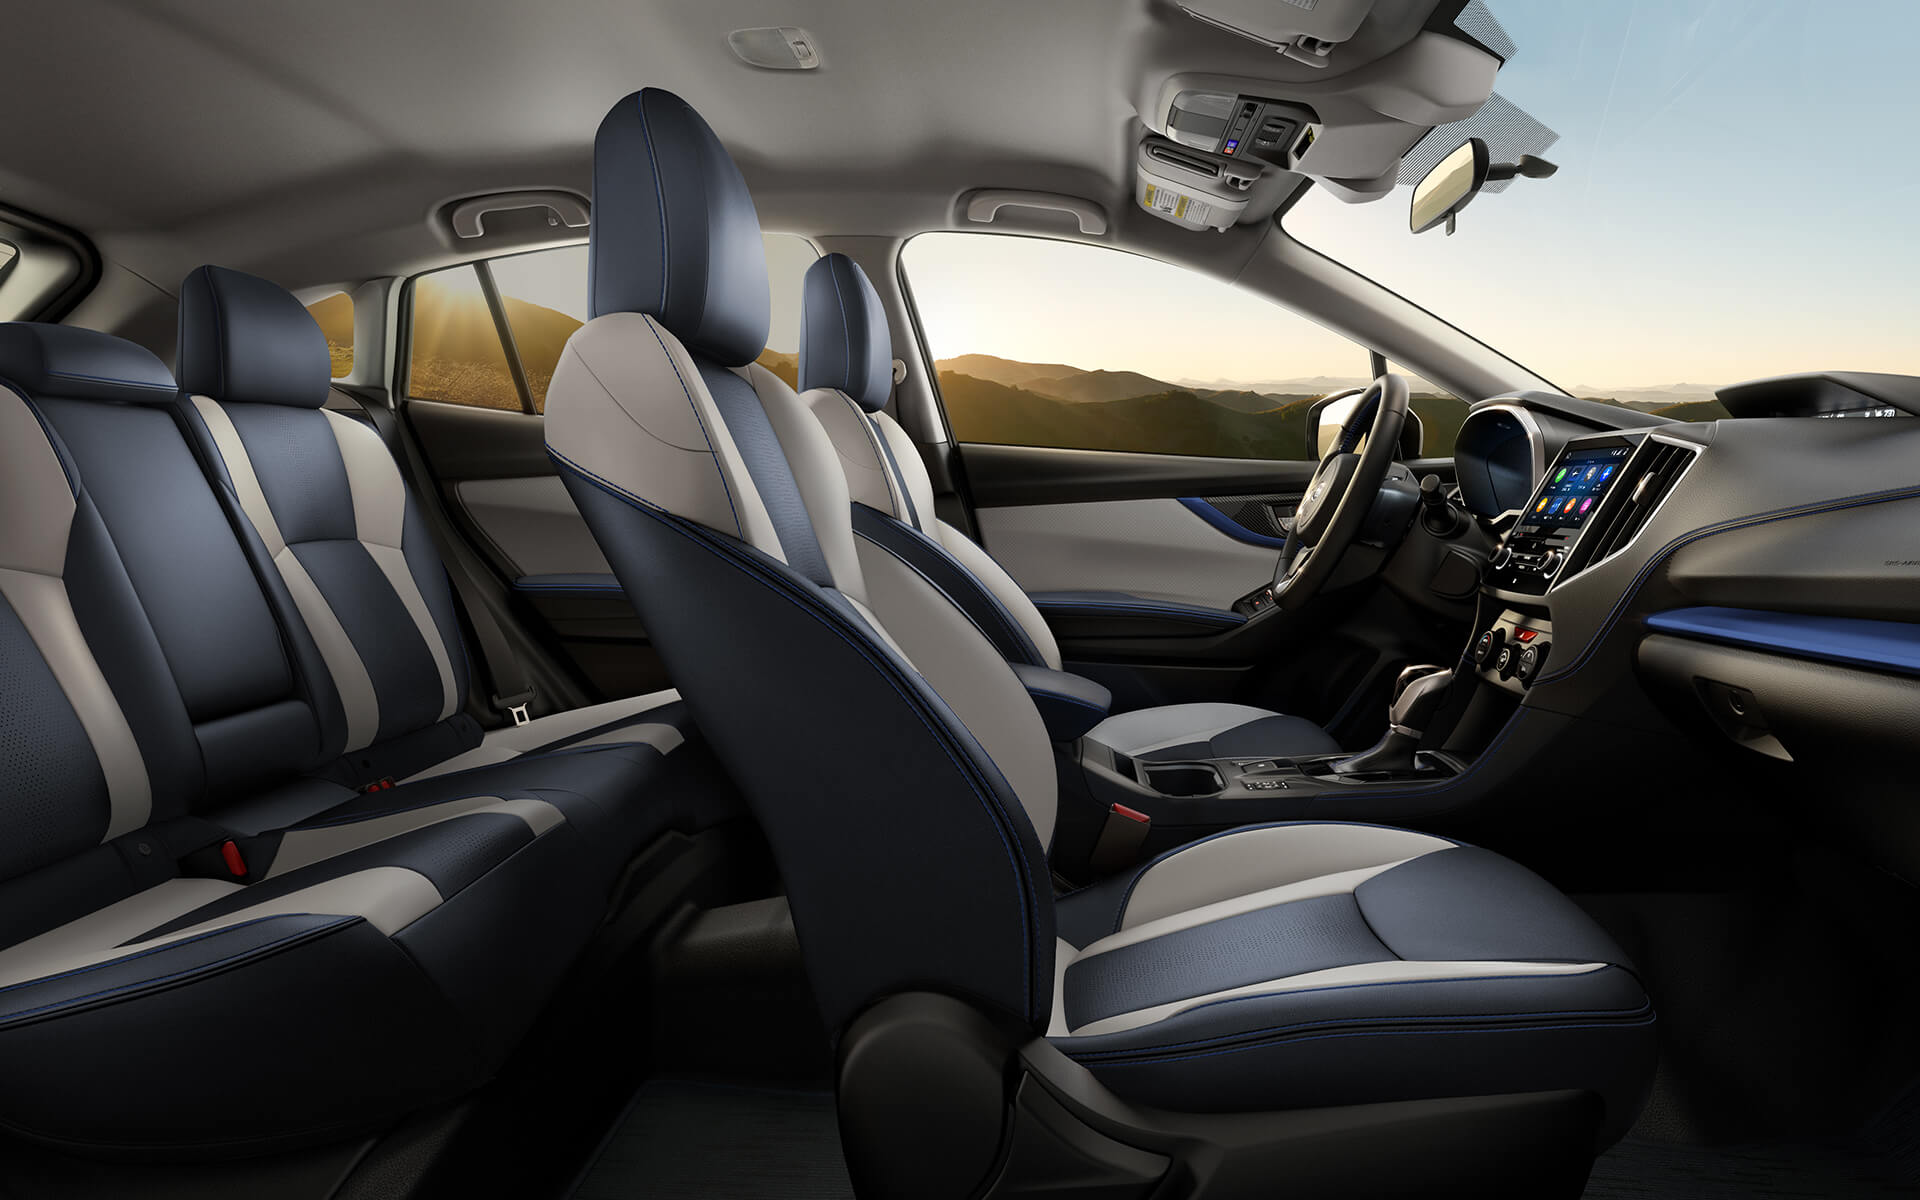 A view of the spacious interior and exclusive design of the 2020 Crosstrek Hybrid.